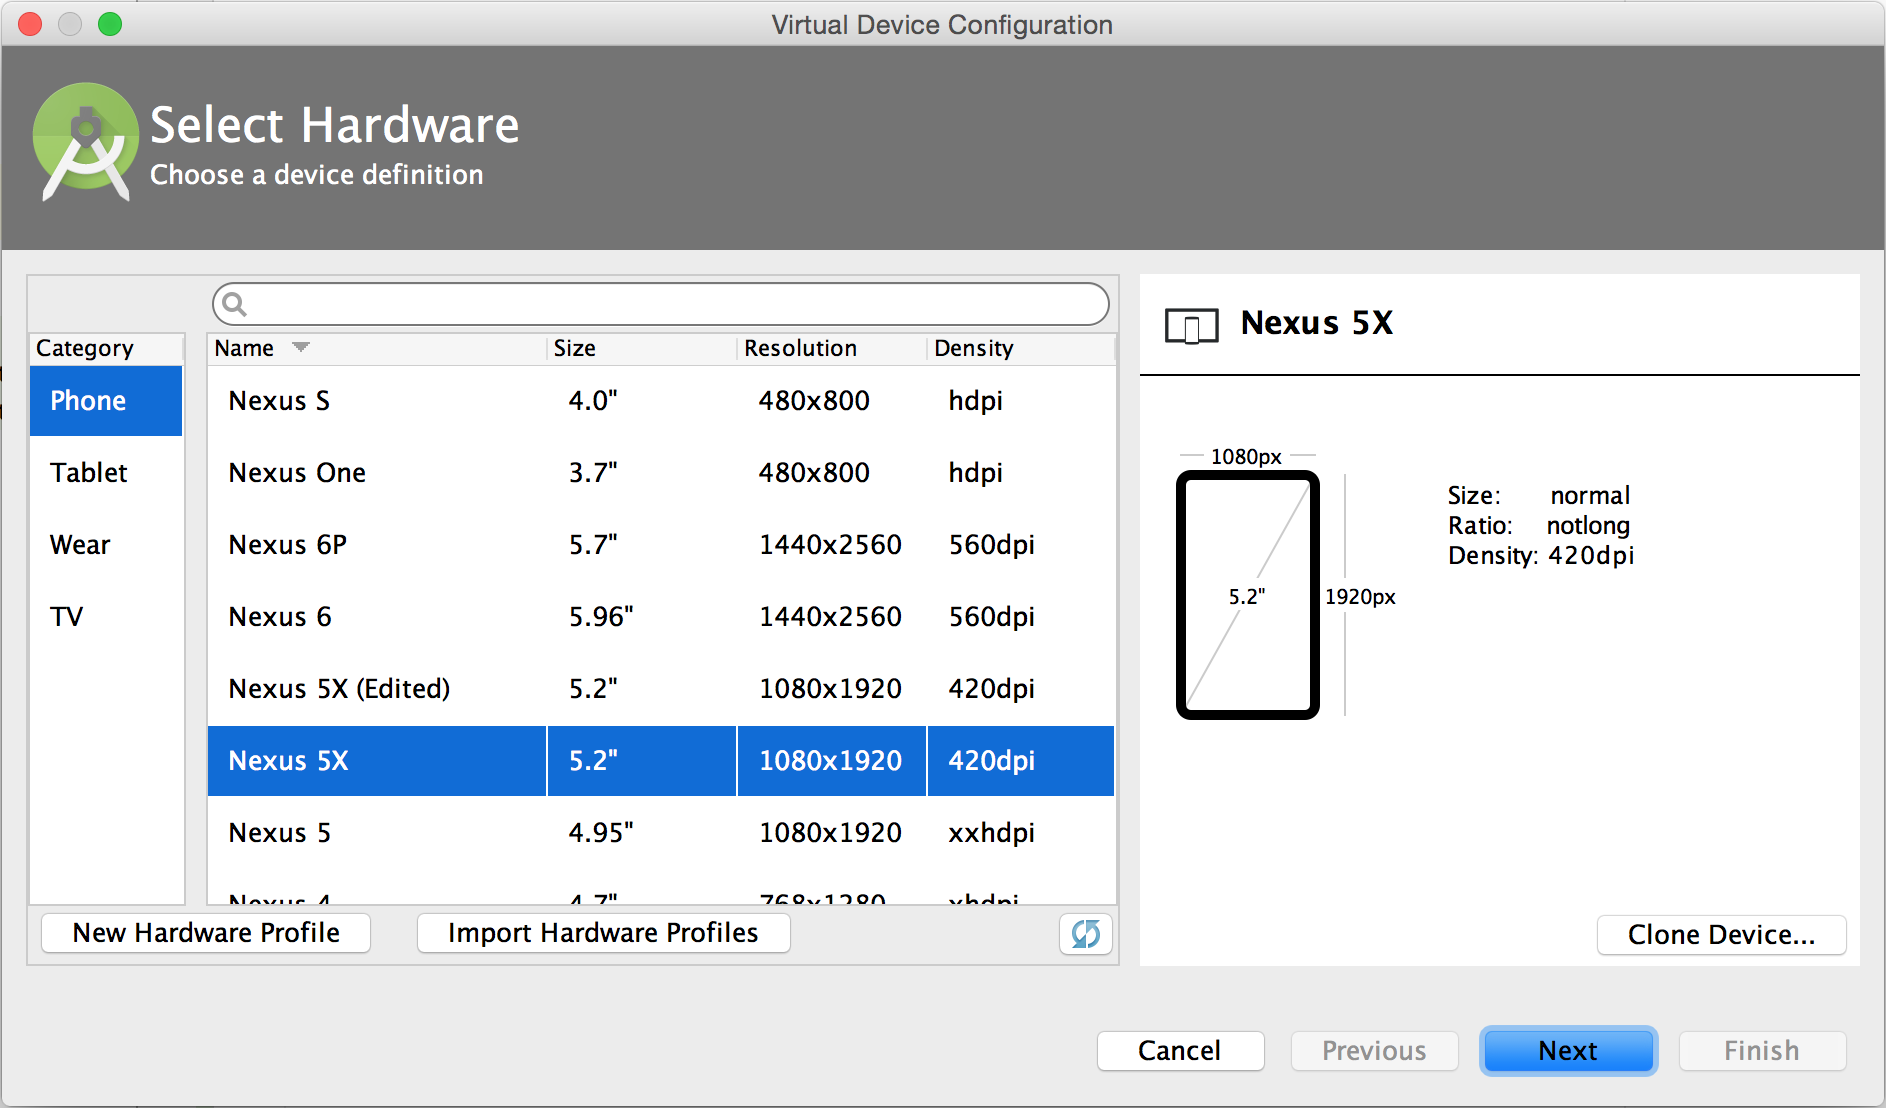 AVD Manager 的 Hardware Profile 页面